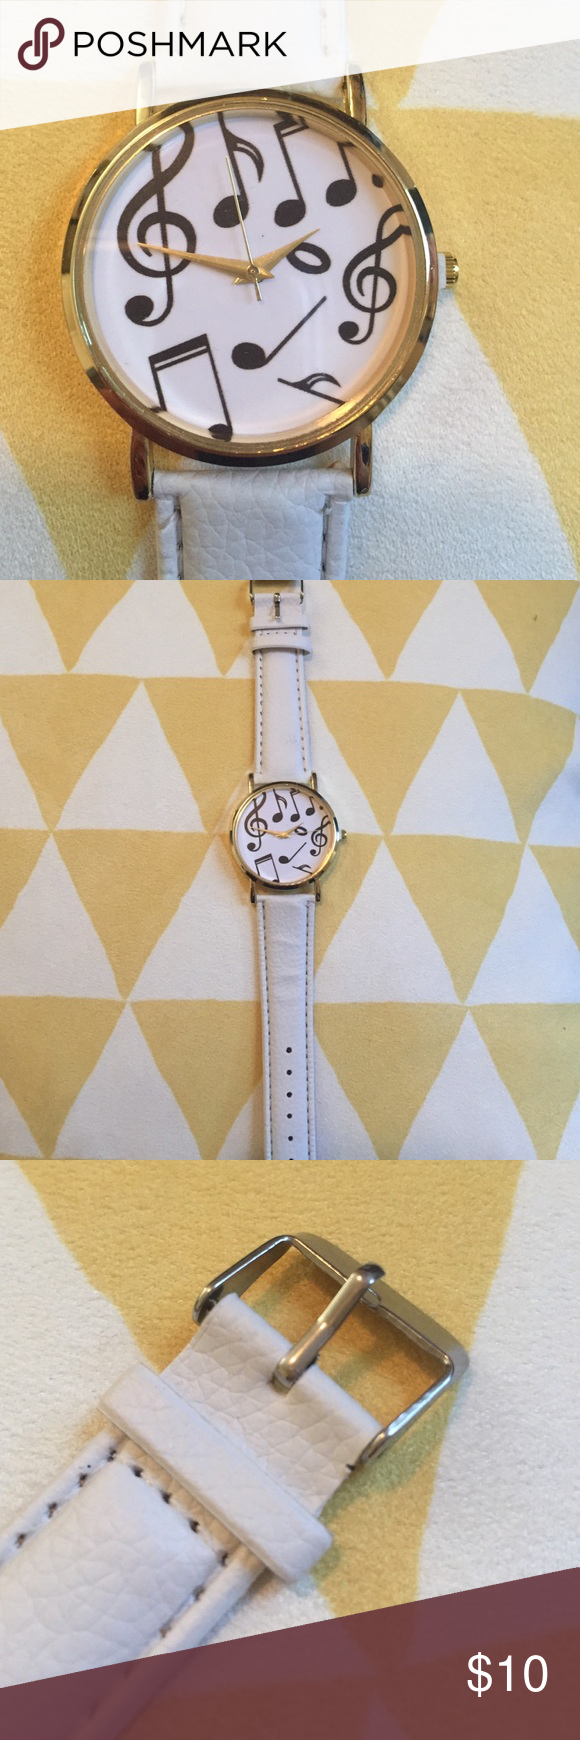 Music Note Wrist Watch Off white and gold music note wrist watch. Never been worn, only for photo. Excellent condition, brand new! Accessories Watches